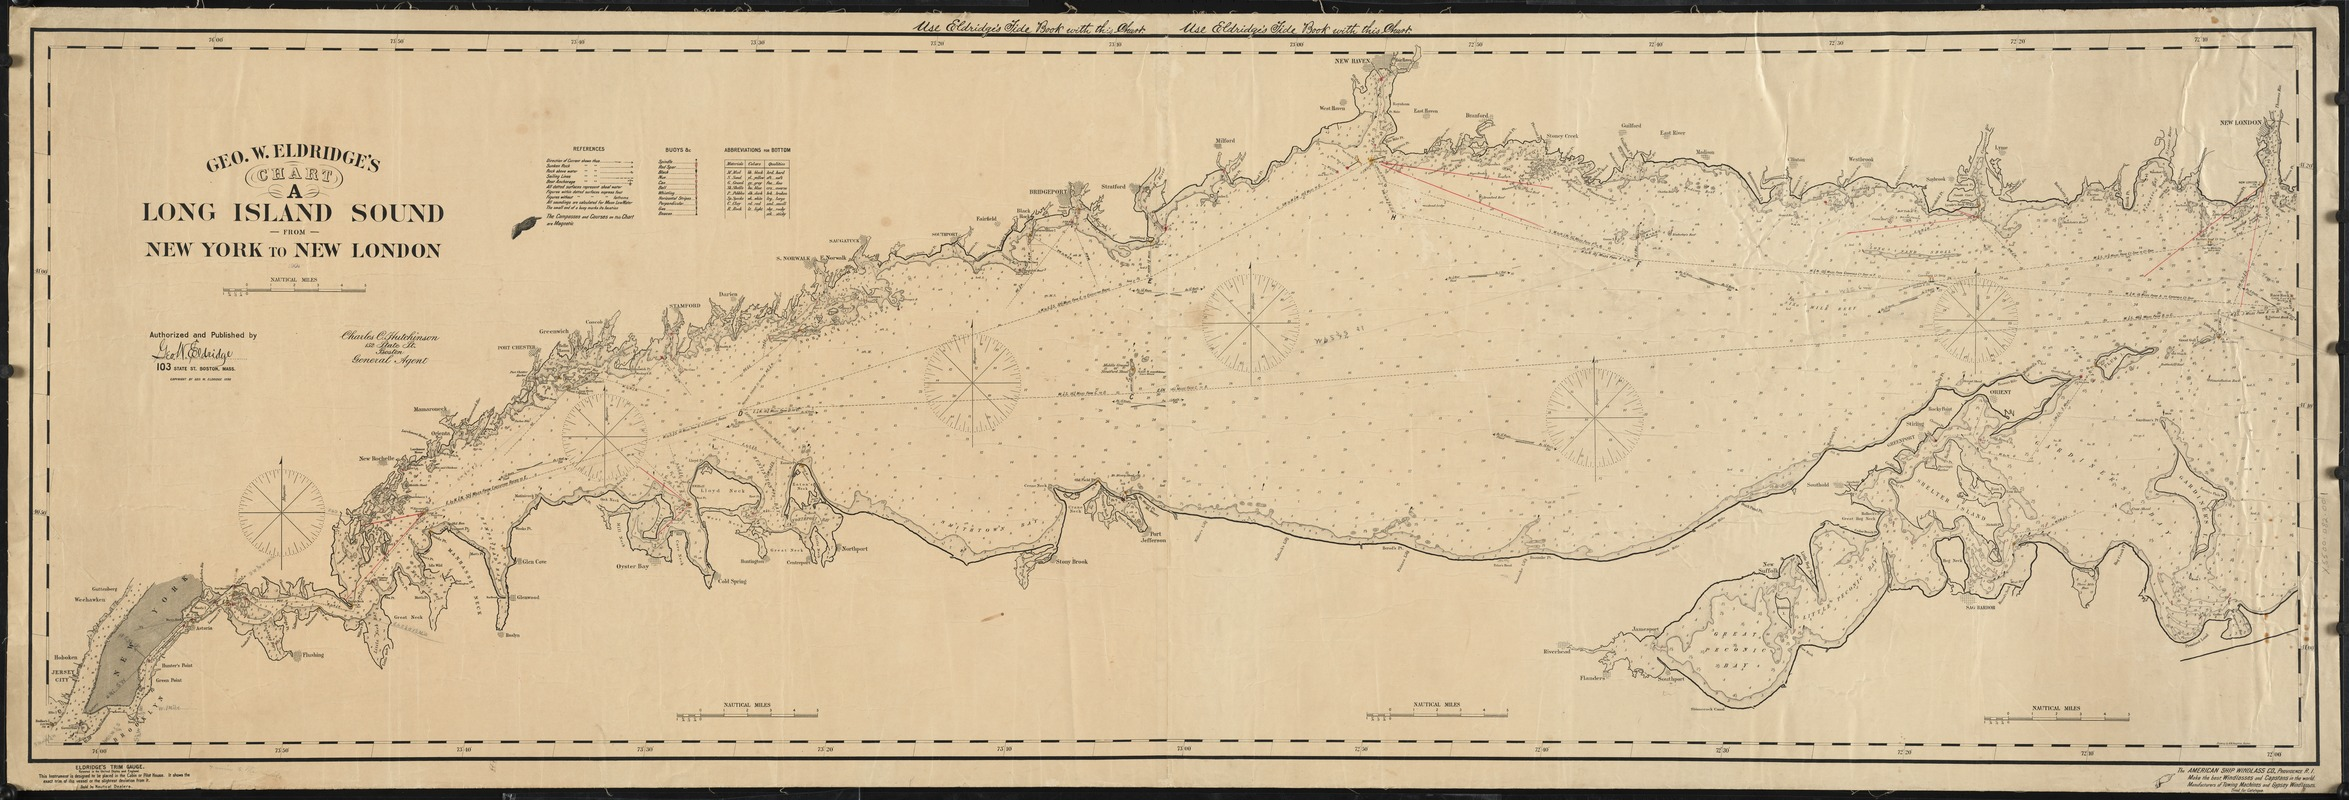 Geo. W. Eldridge's chart A, Long Island Sound from New York to New London